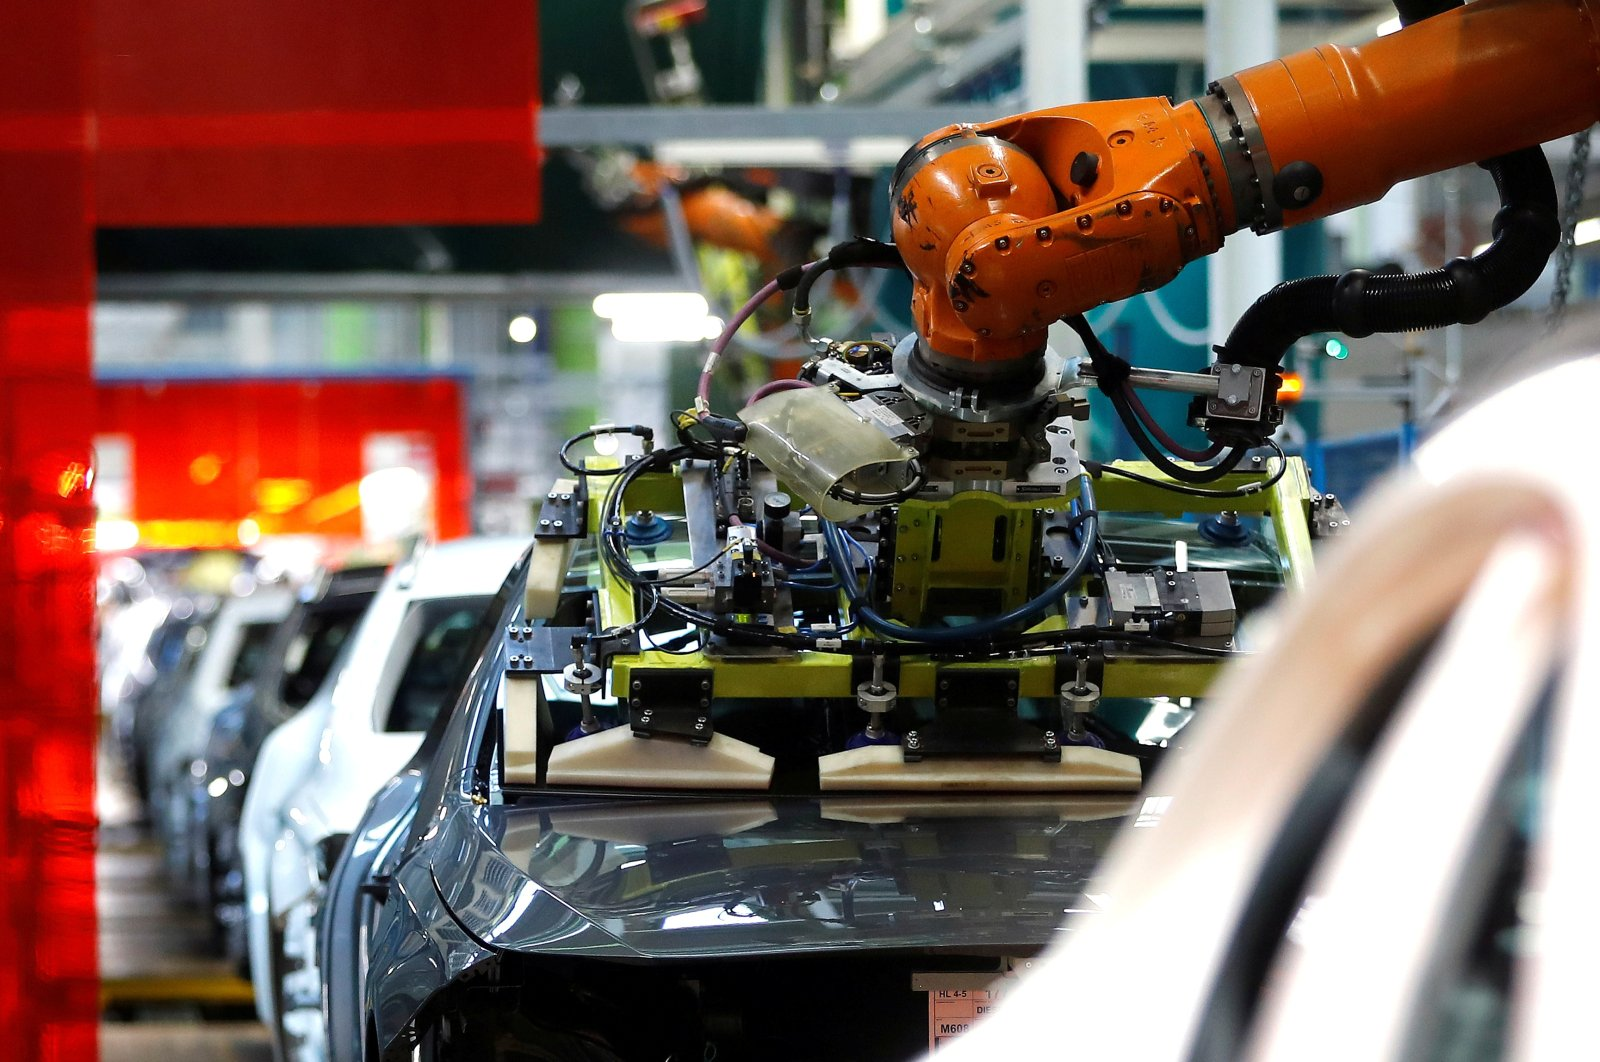 A robot engineered by Kuka adjusts a windscreen in a fully automated process on a model of the A-class production line of German car manufacturer Mercedes Benz at the Daimler factory in Rastatt, Germany, Feb. 4, 2019. (Reuters Photo)